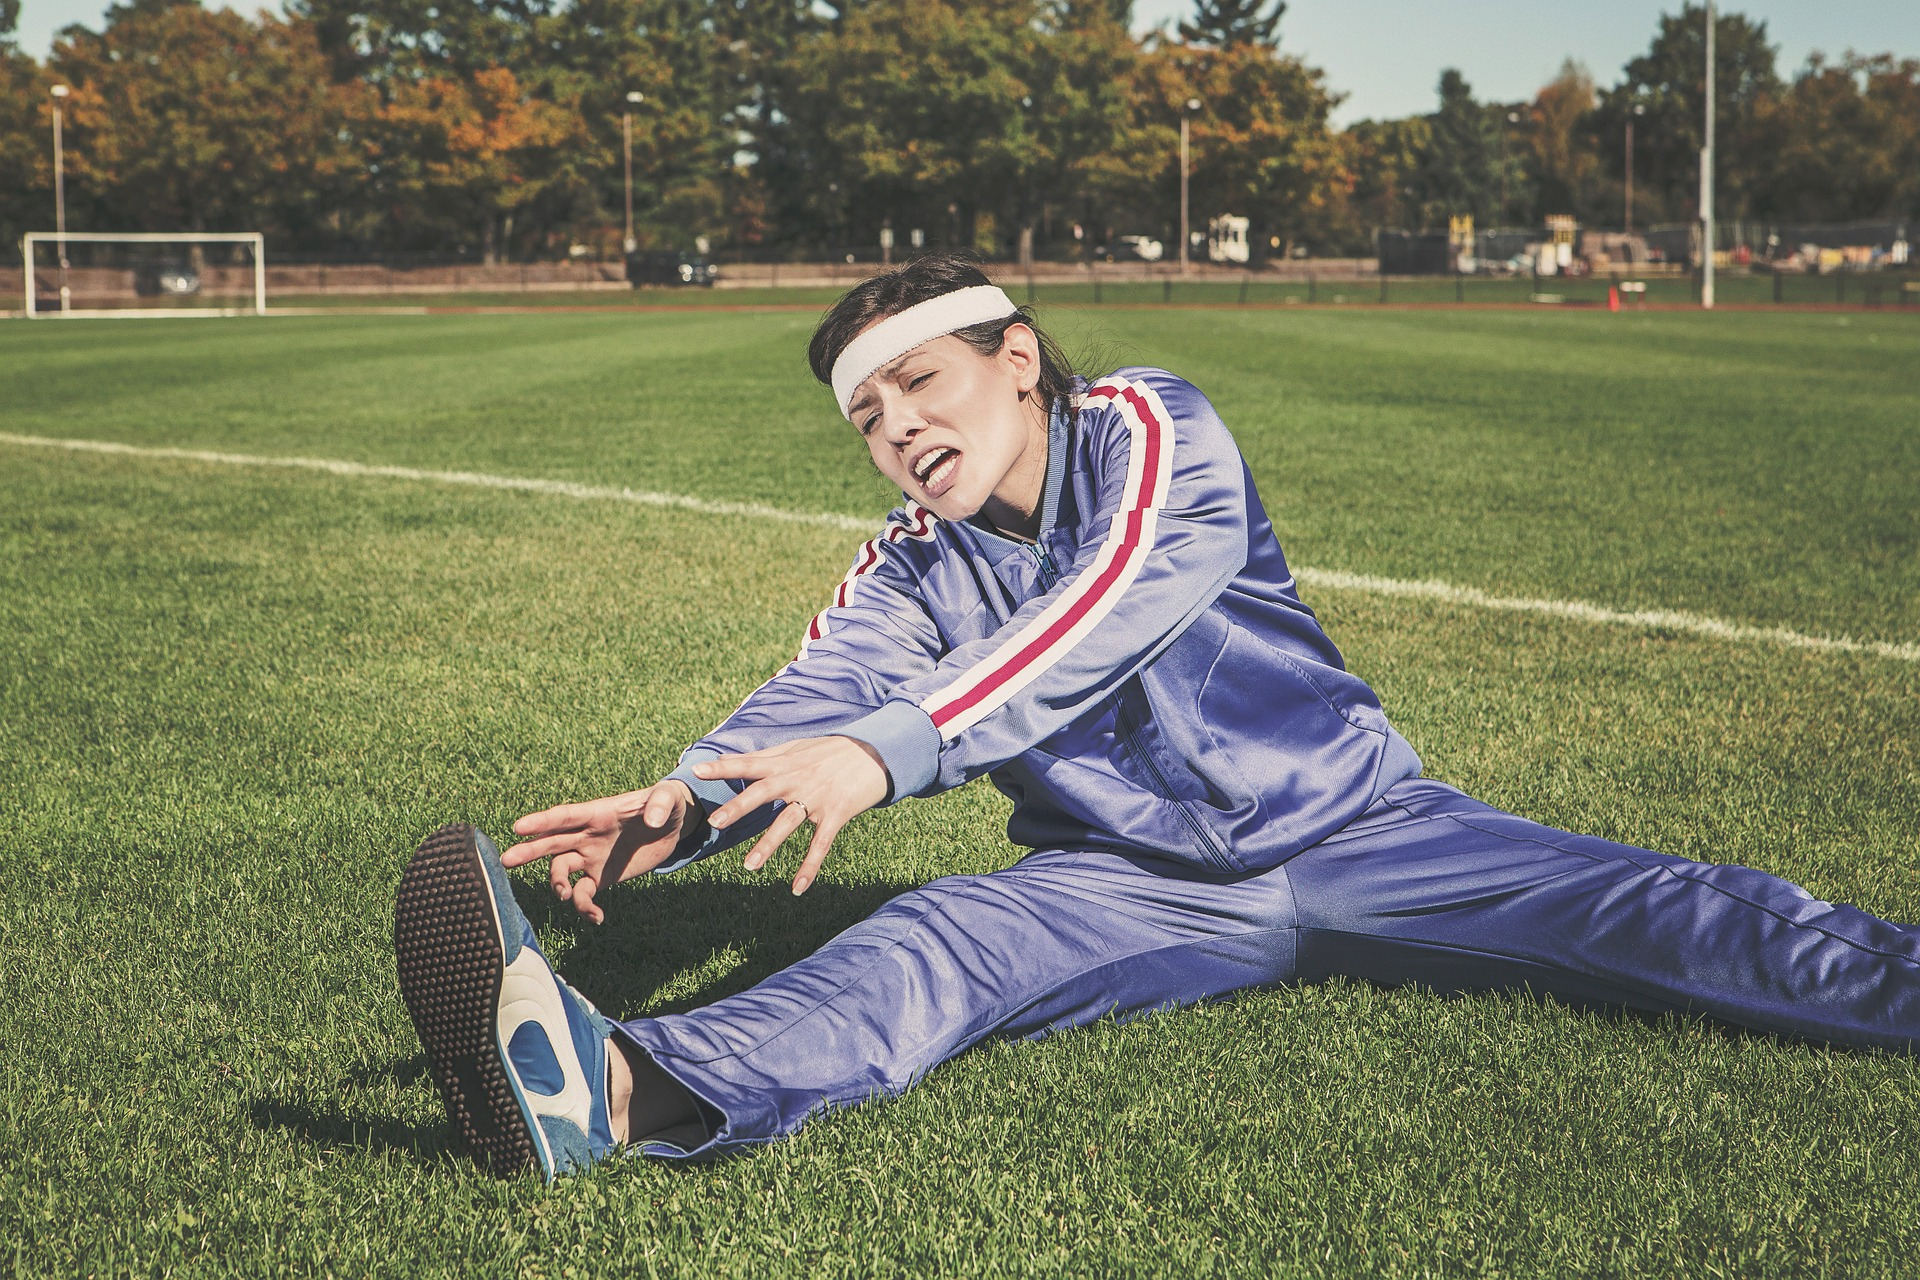 Woman stretching in trackpants on a soccer field